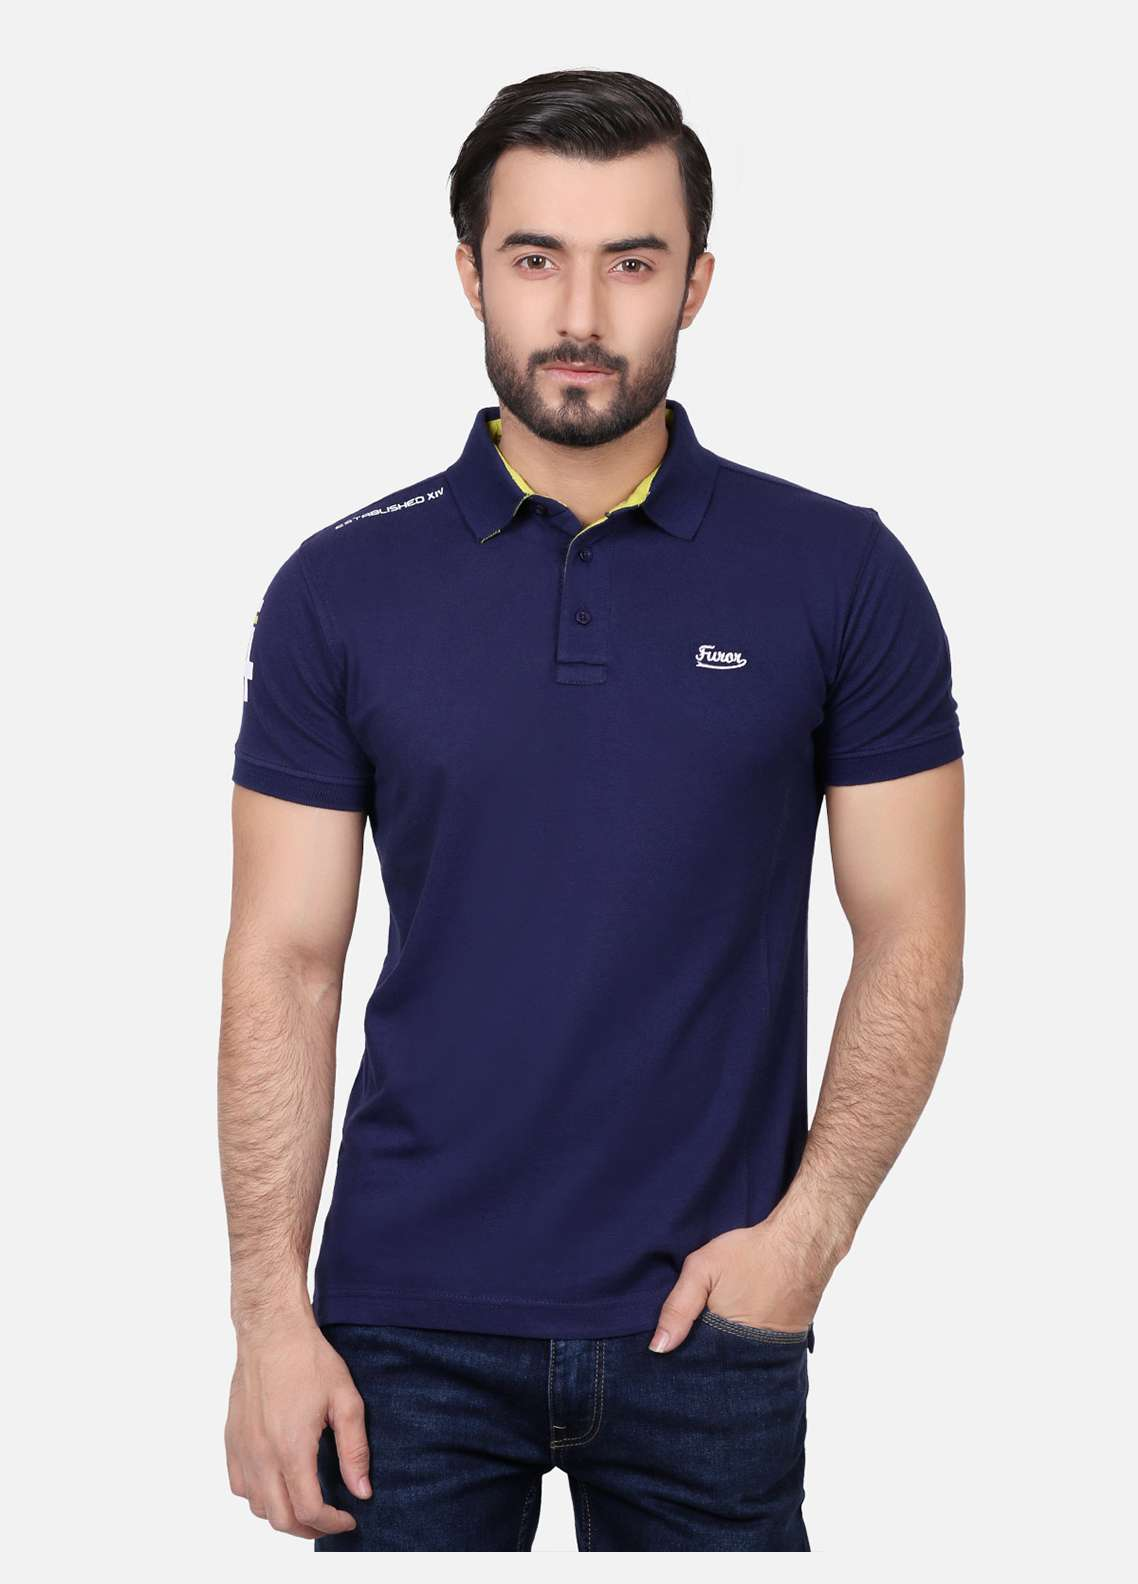 Furor Cotton Polo T-Shirts for Men - Navy Blue FRM18PS 026